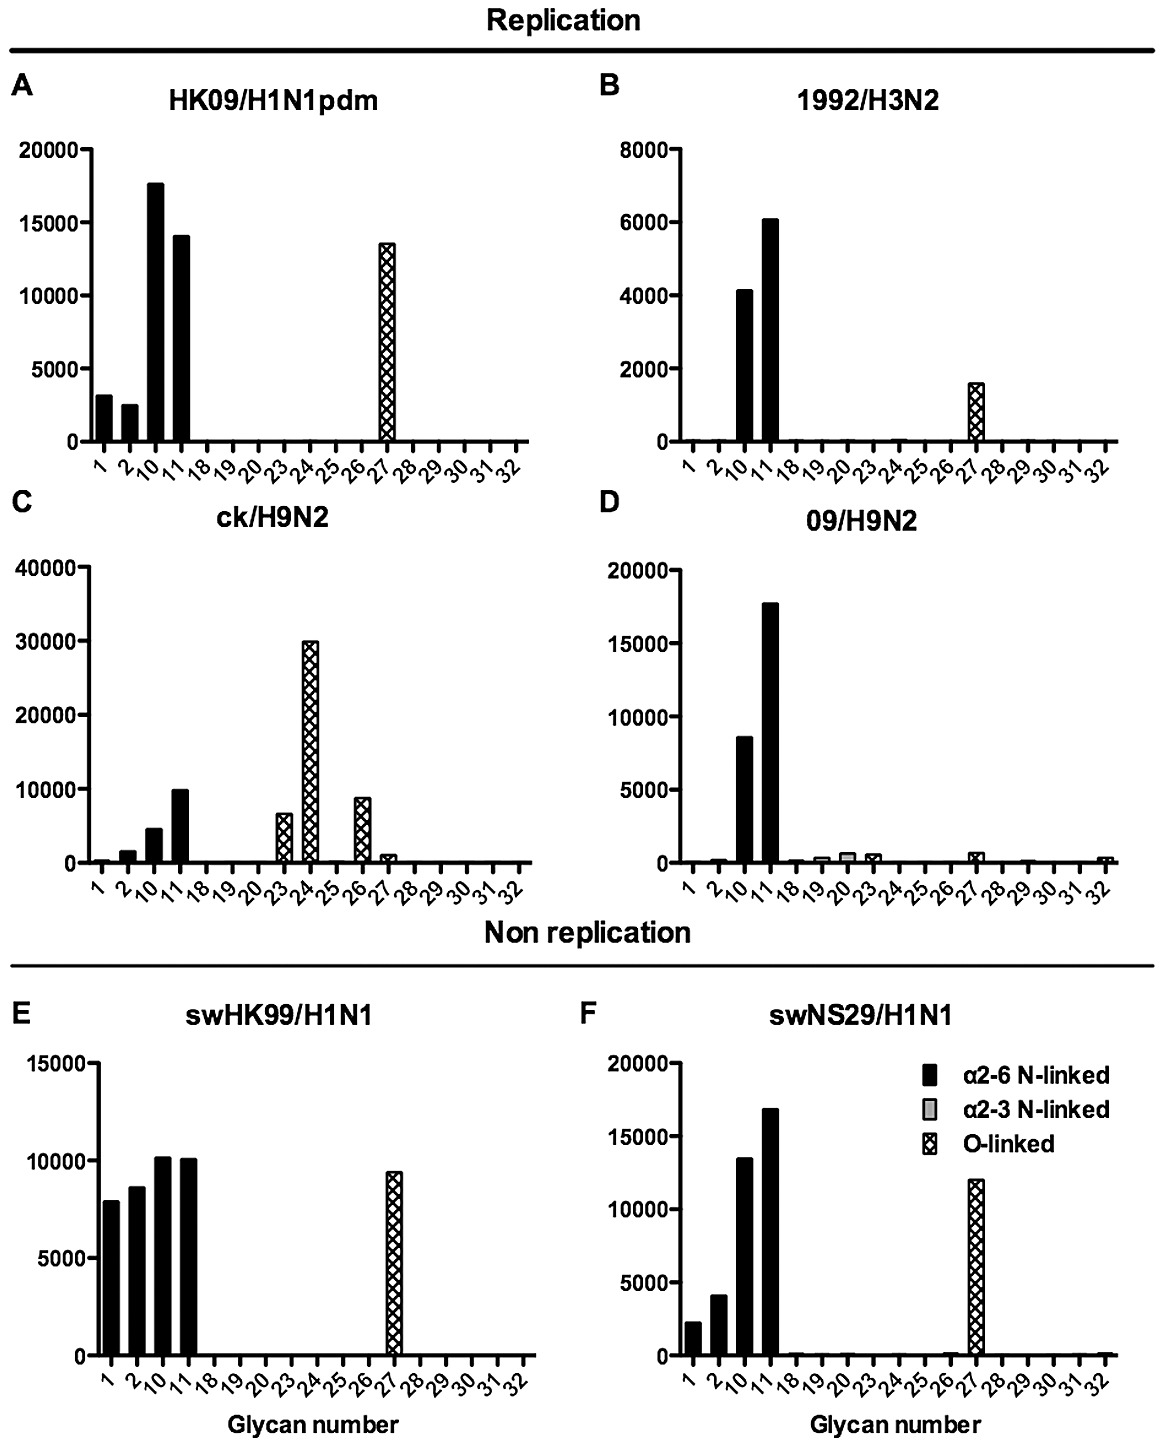 Glycan array analysis of viruses that showed no replication or replication in the bronchial explants.